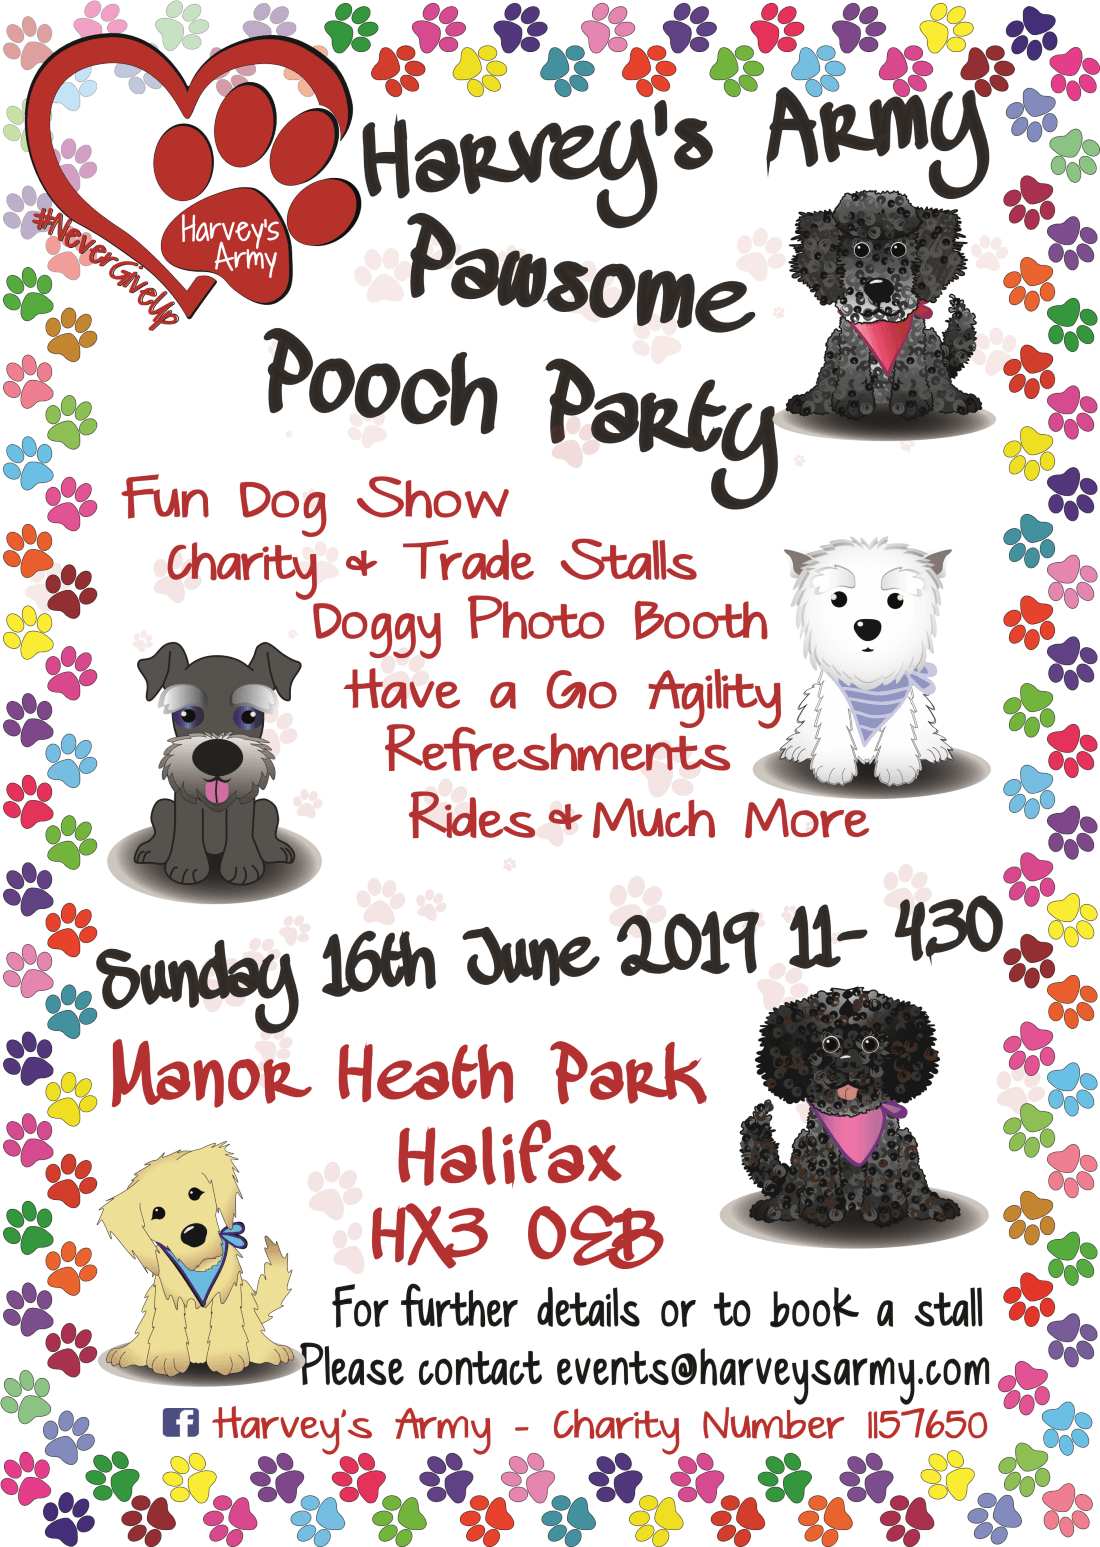 Harveys Army Pawsome Pooch Party 2019